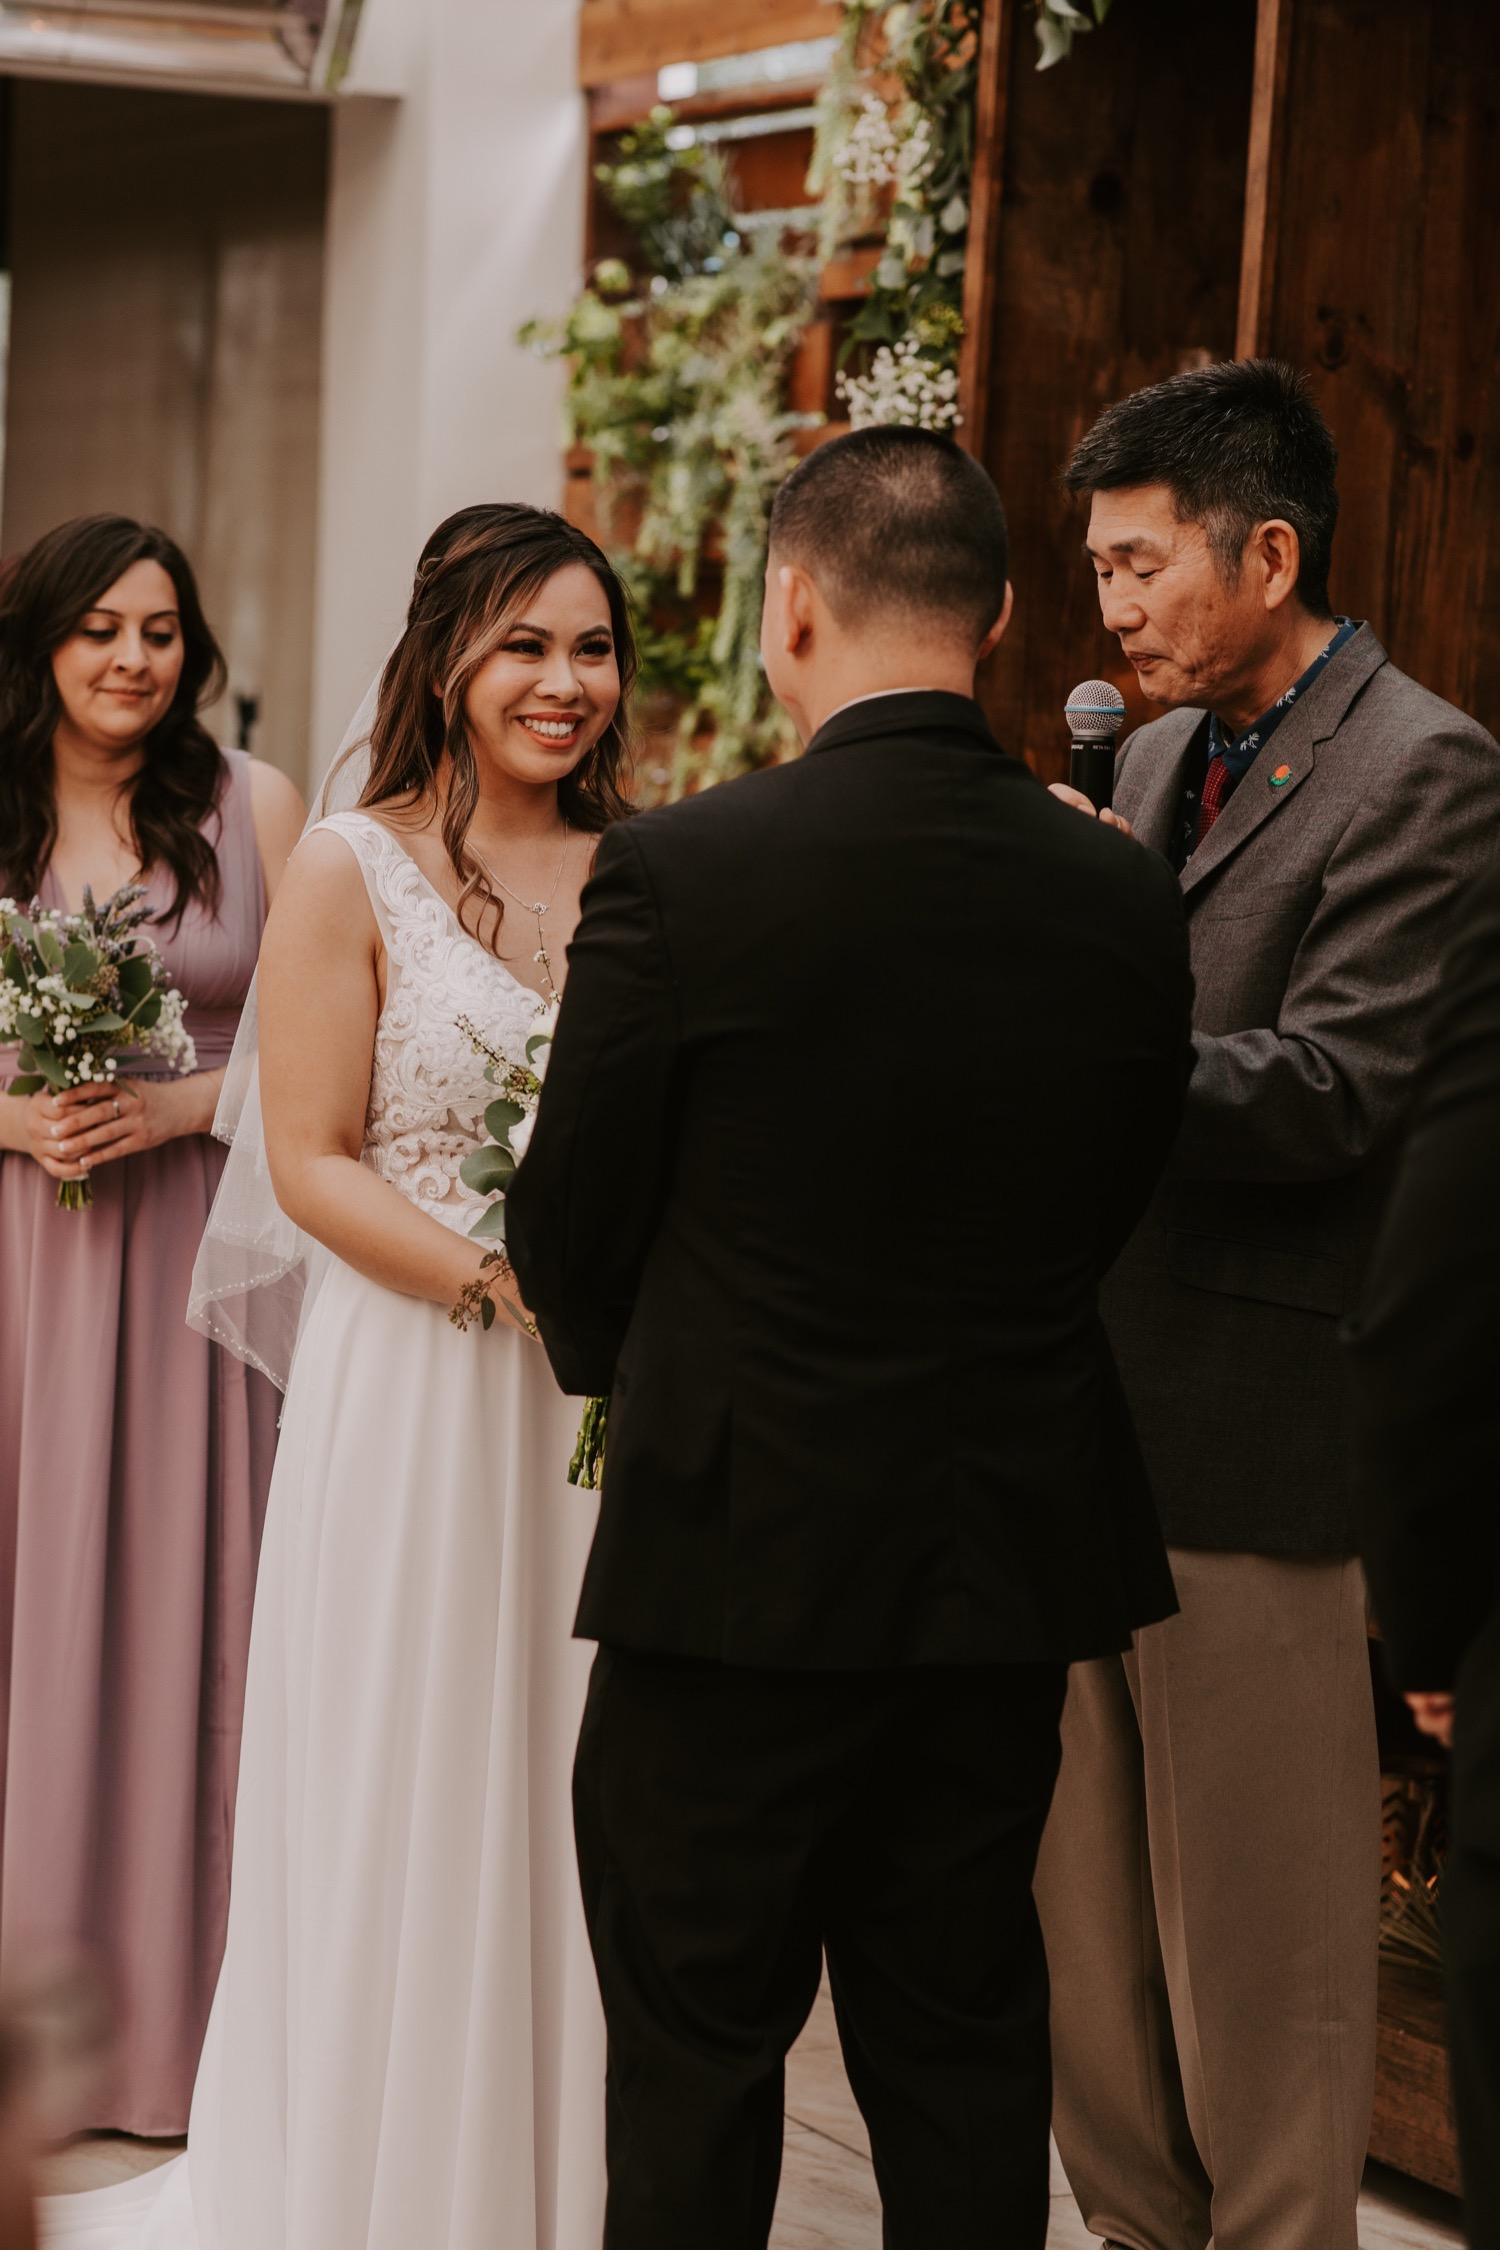 twenty-eight-irvine-wedding-california-traditional-vietnamese-tea-ceremony43.jpg